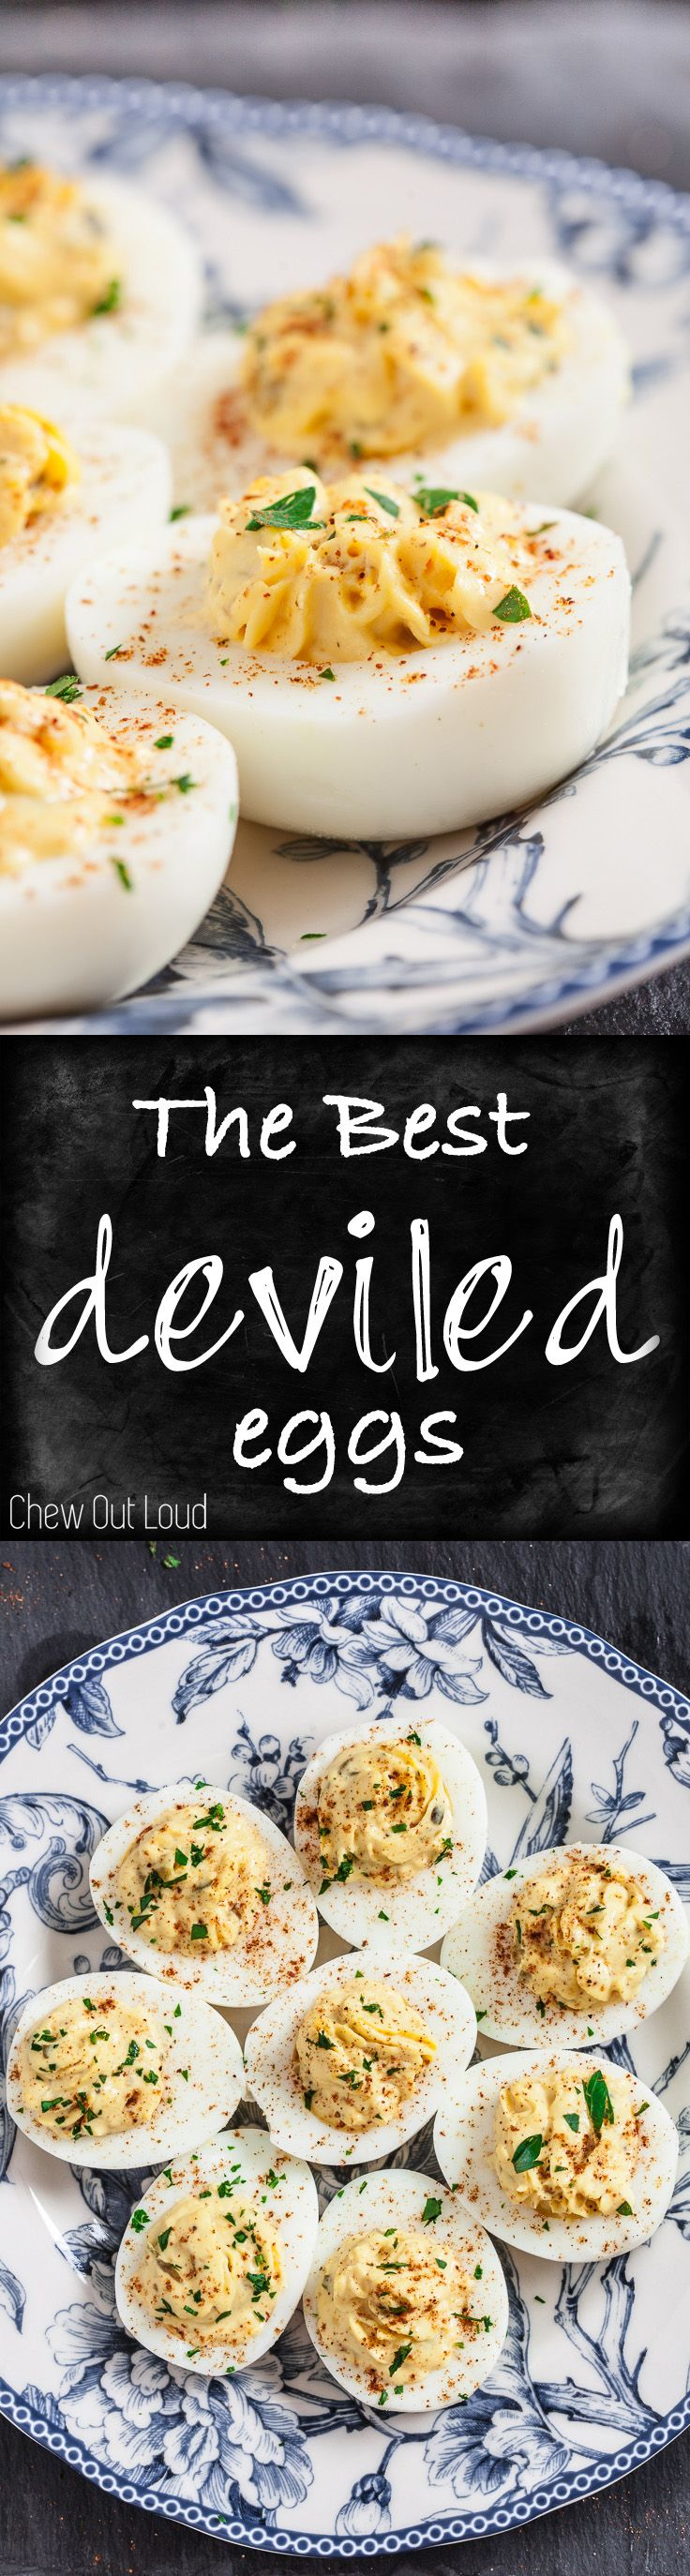 How to Make The Best Deviled Eggs. From fail-proof boiling to easy peeling to perfect seasoning. #appetizer #recipes